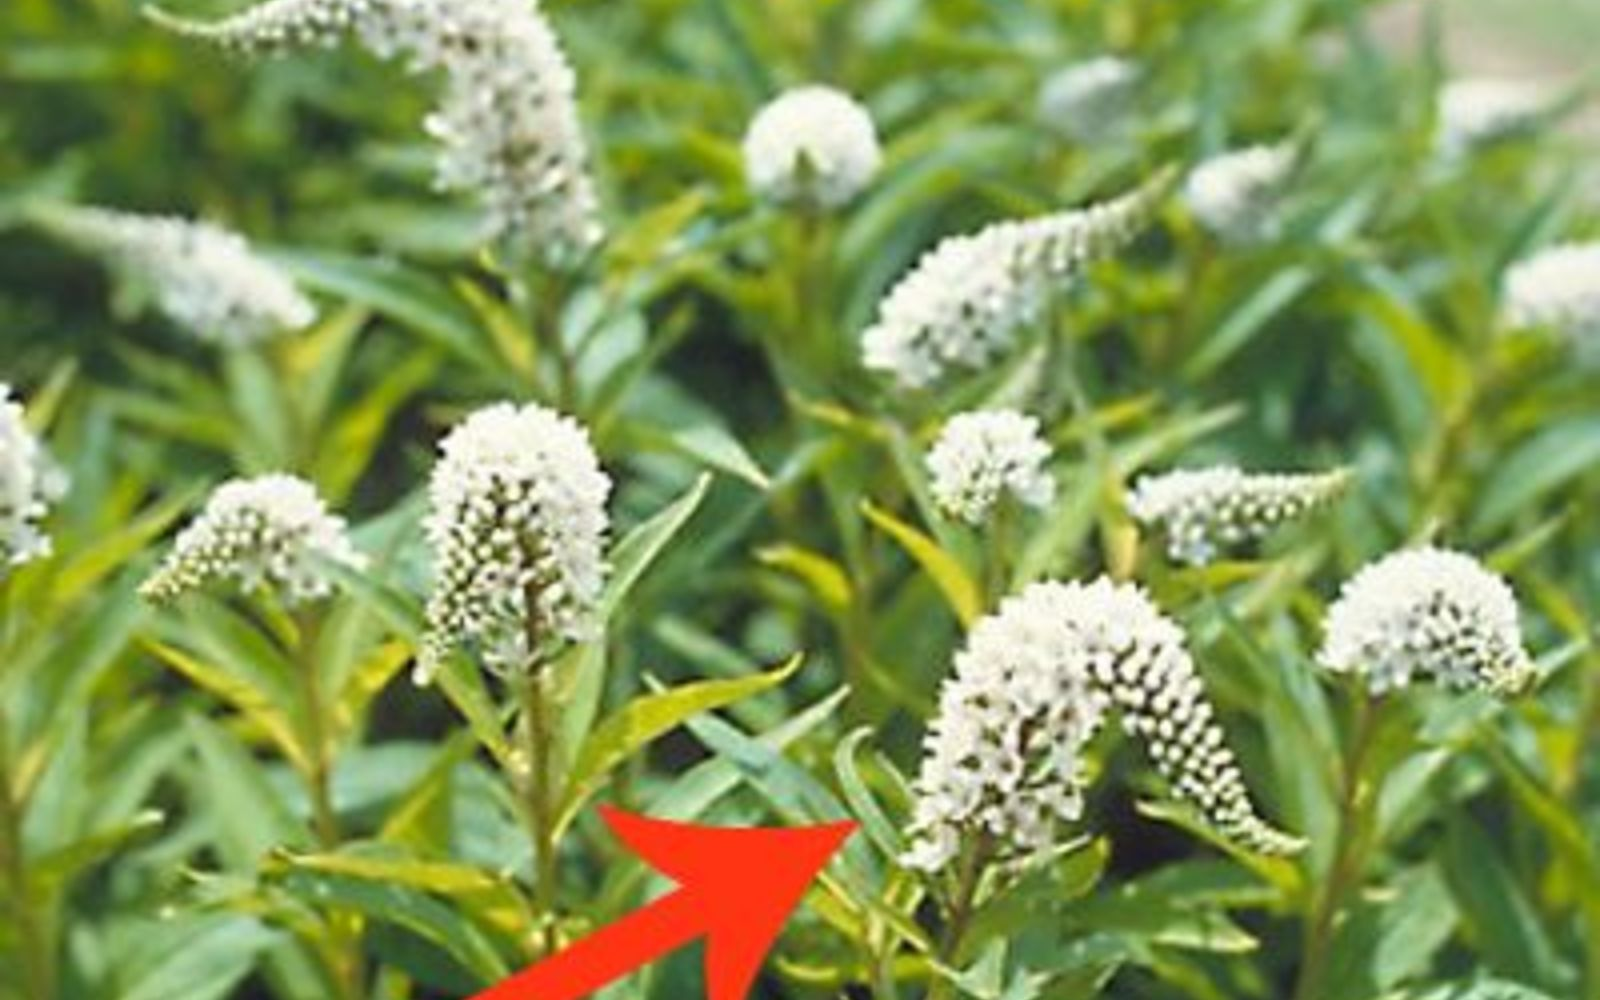 s 11 beatiful plants that are secretly killing your garden, gardening, Gooseneck Loosestrife